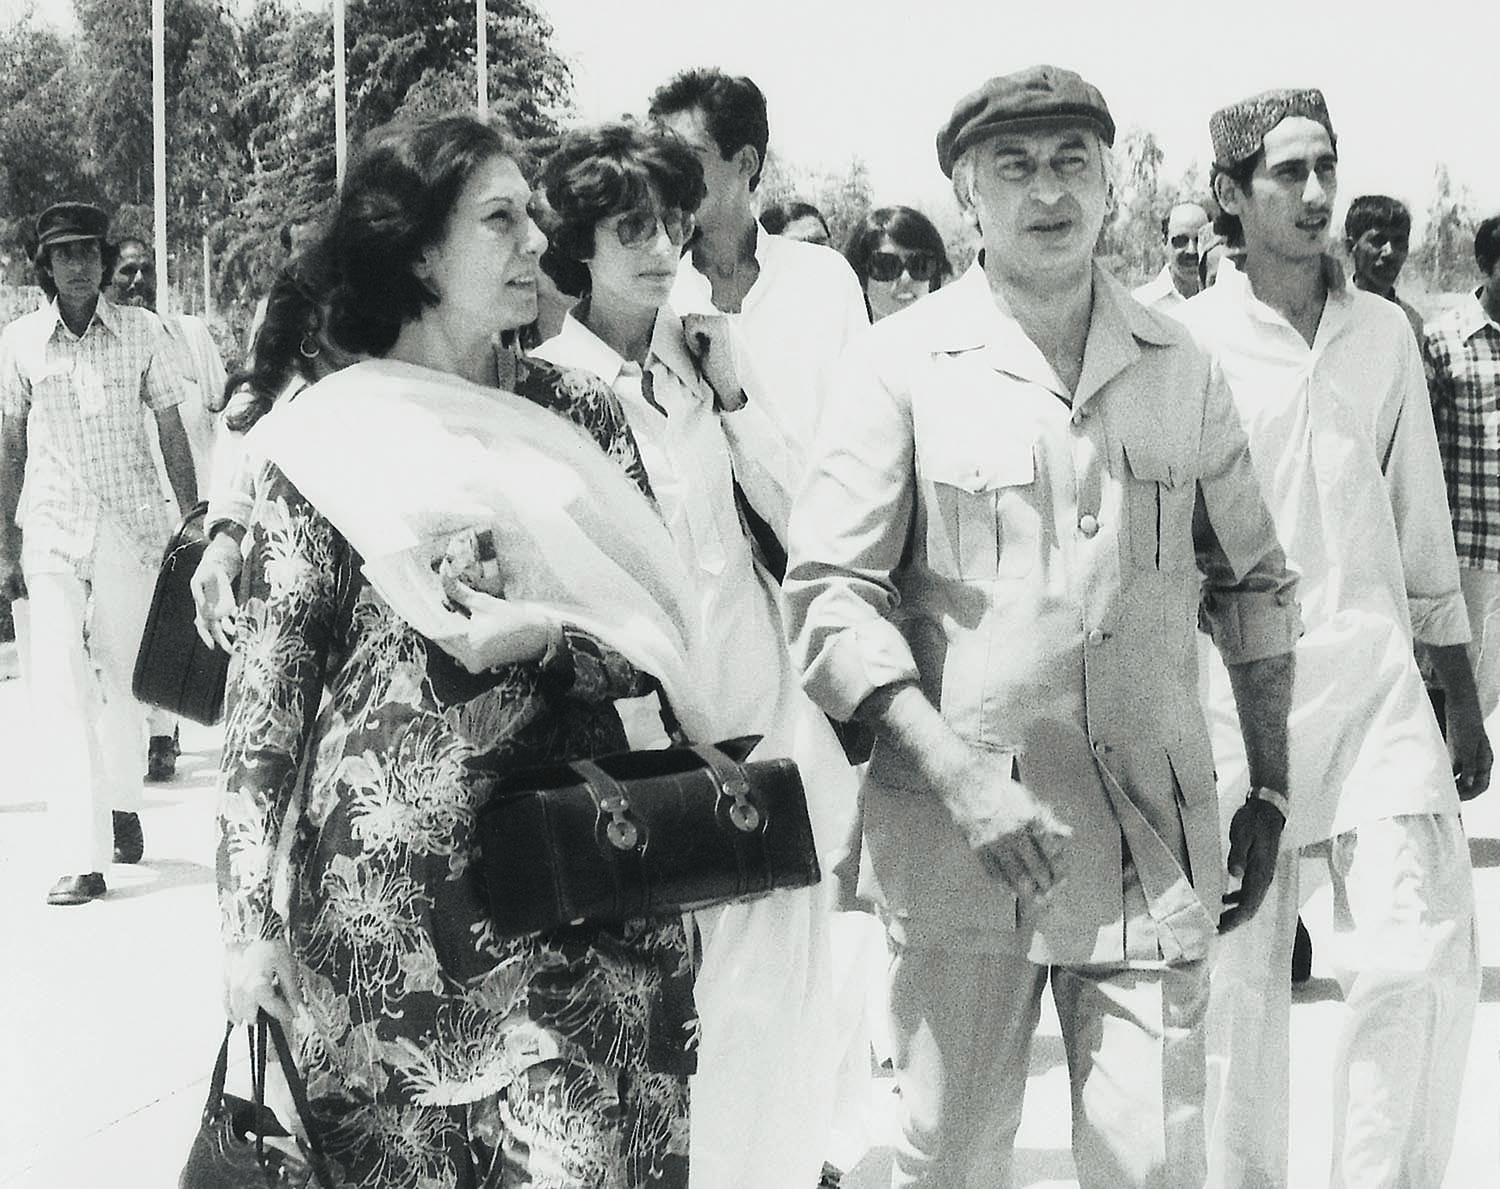 A rare photograph of the Bhutto Family in its prime. Seen from left to right are Begum Nusrat Bhutto, Benazir Bhutto, Murtaza Bhutto (looking leftwards), Zulfikar Ali Bhutto and Shahnawaz Bhutto. | Photo: Dawn / White Star Archives